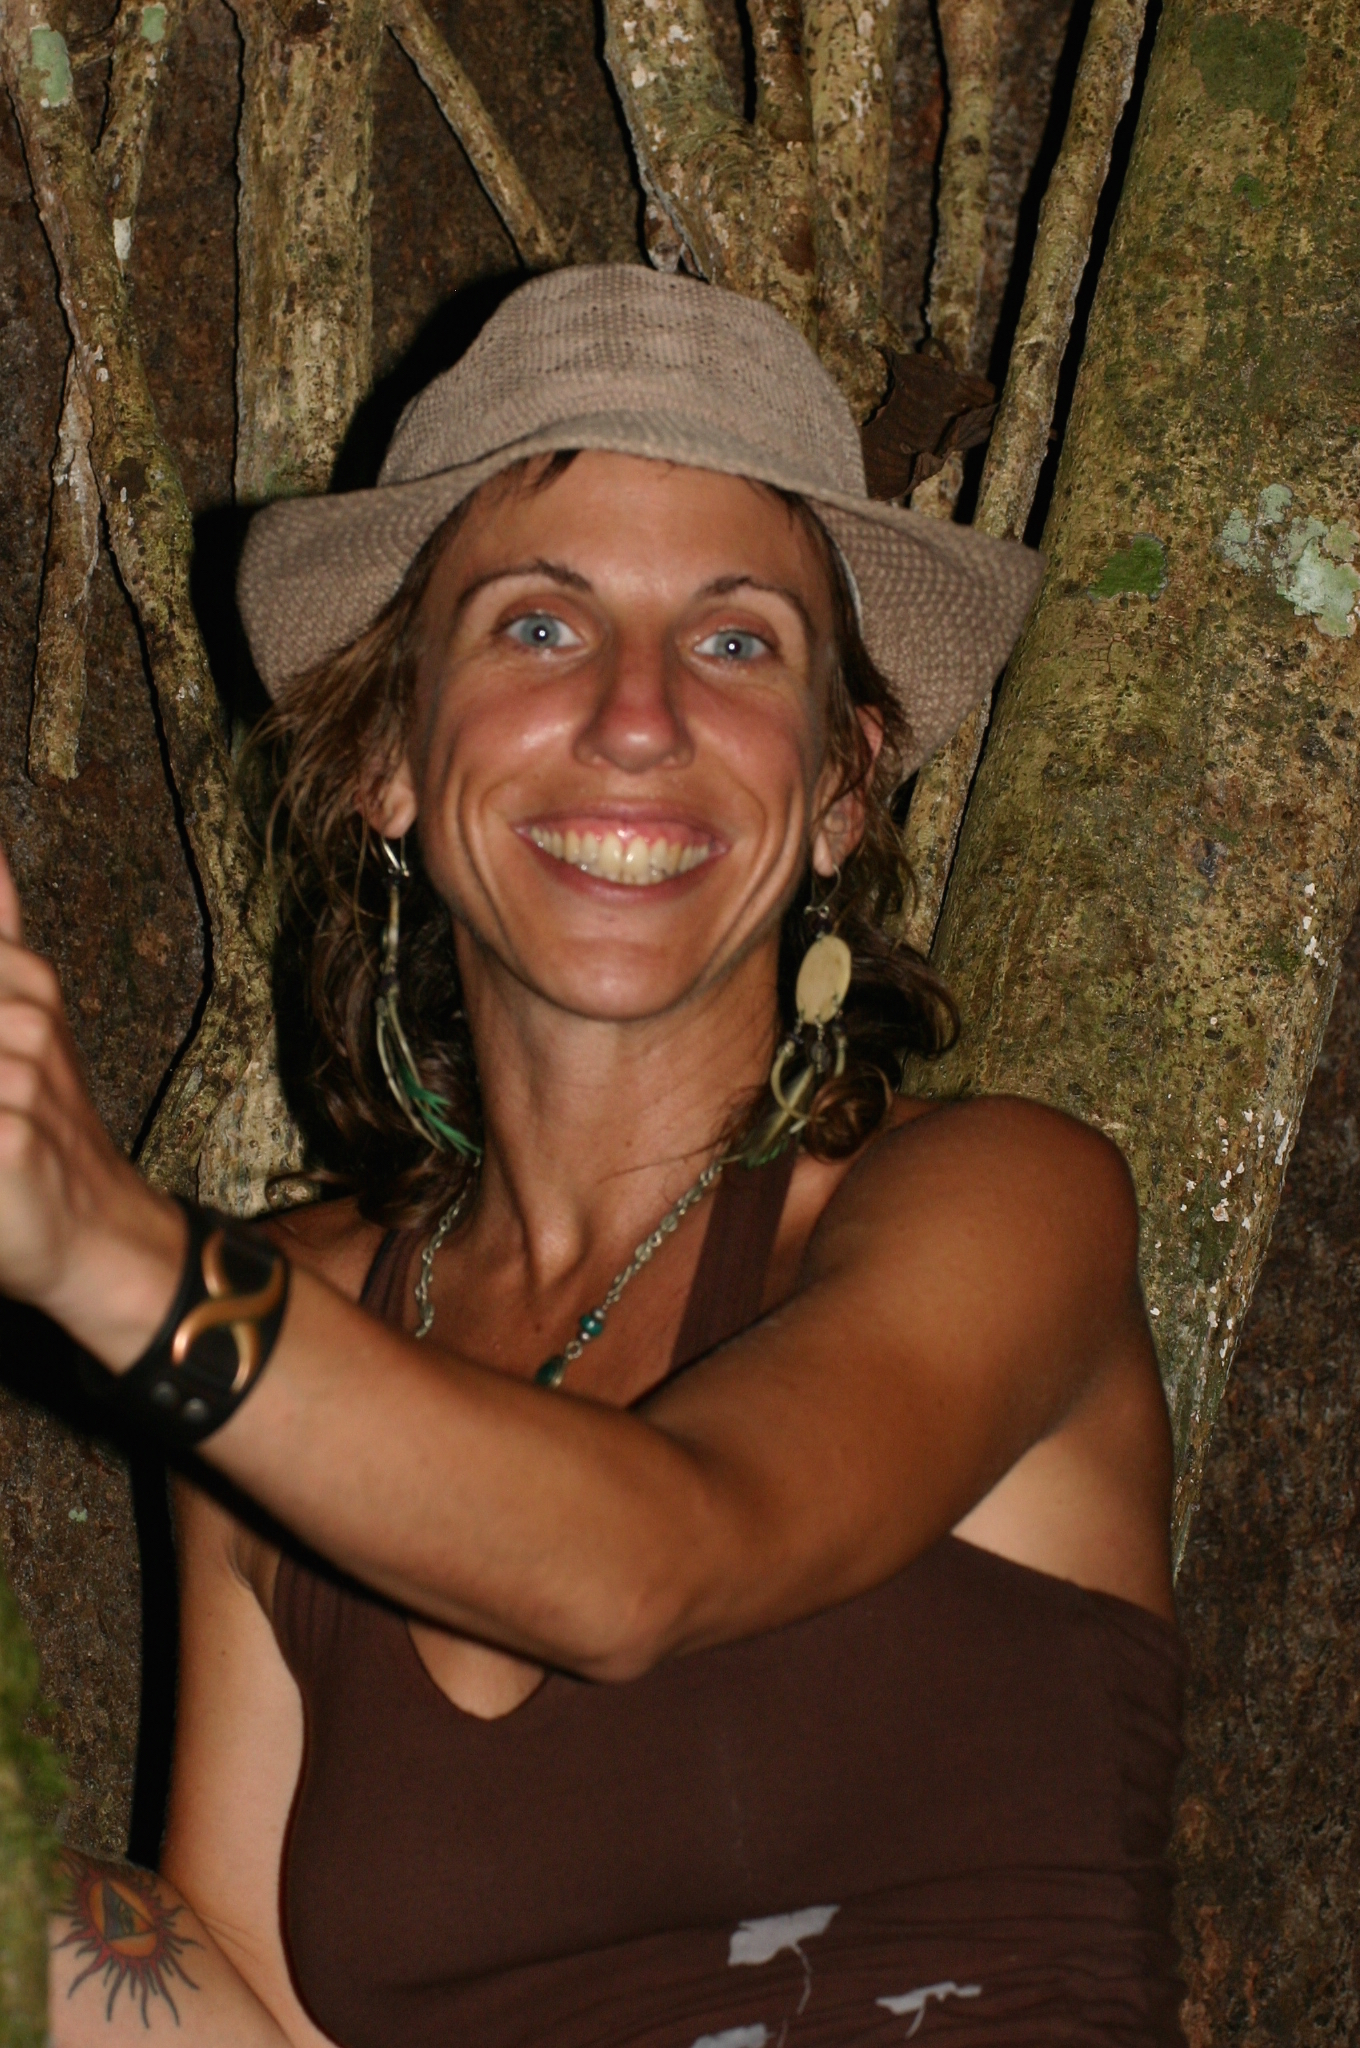 Esoteric Healer, Integrational Therapist, Dancer & Founder of Ayahuasca Yoga